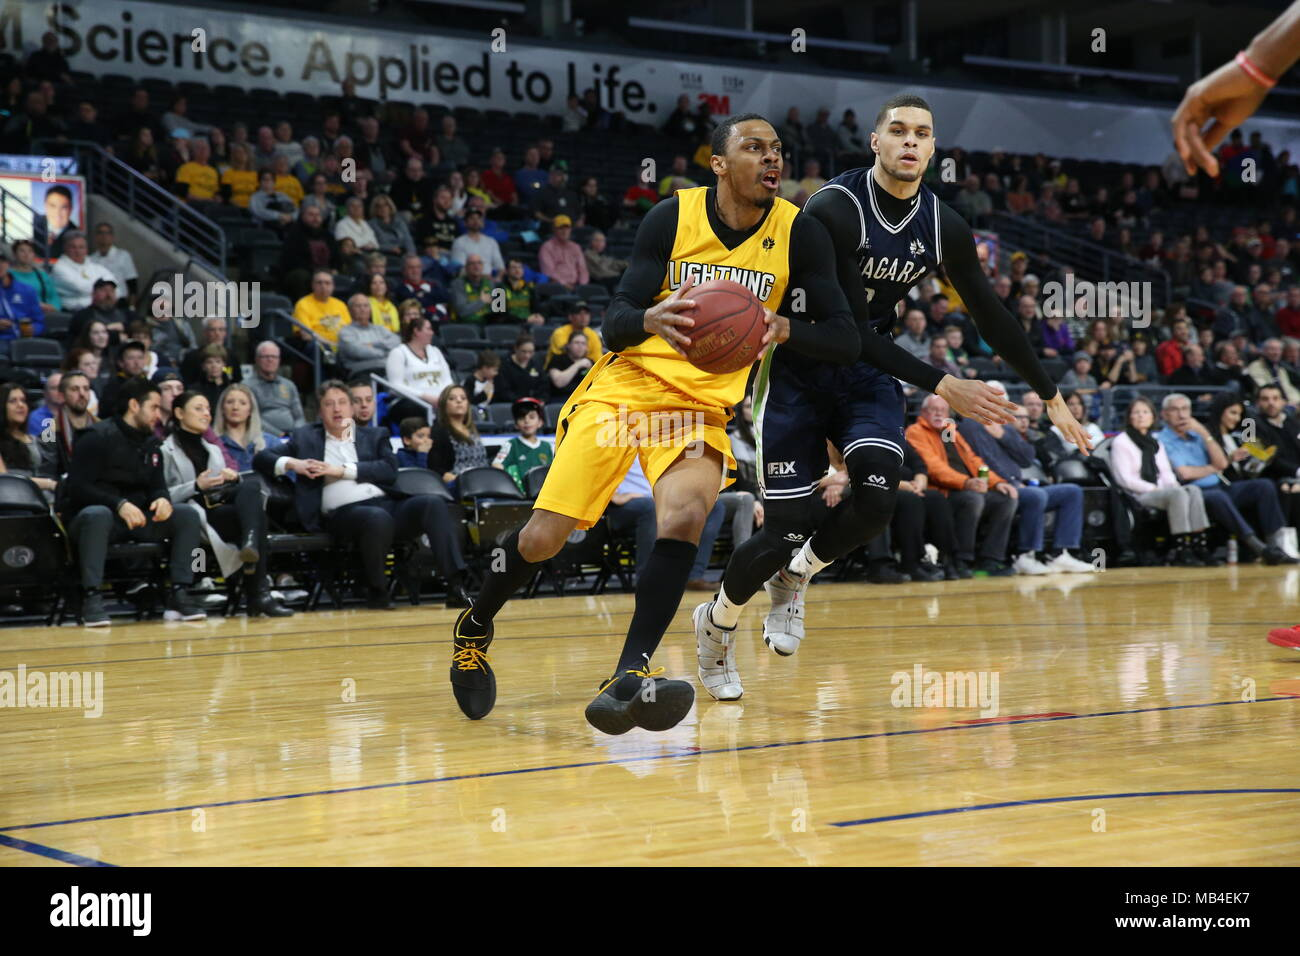 Ontario, Canada.6th April 2018, London, Ontario, Canada.  The London Lightning and the Niagara River Lions battled it out in rough and physical game one of the NBL playoff.  After the game the only hand shake was by the 2 coaches.  London Dominated the game winning 151-115, Doug Herring Jr.(9) and Garrett Williamson(15) both lead the in scoring with 22 points each.   Luke Durda/Alamy Live News Credit: Luke Durda/Alamy Live News - Stock Image